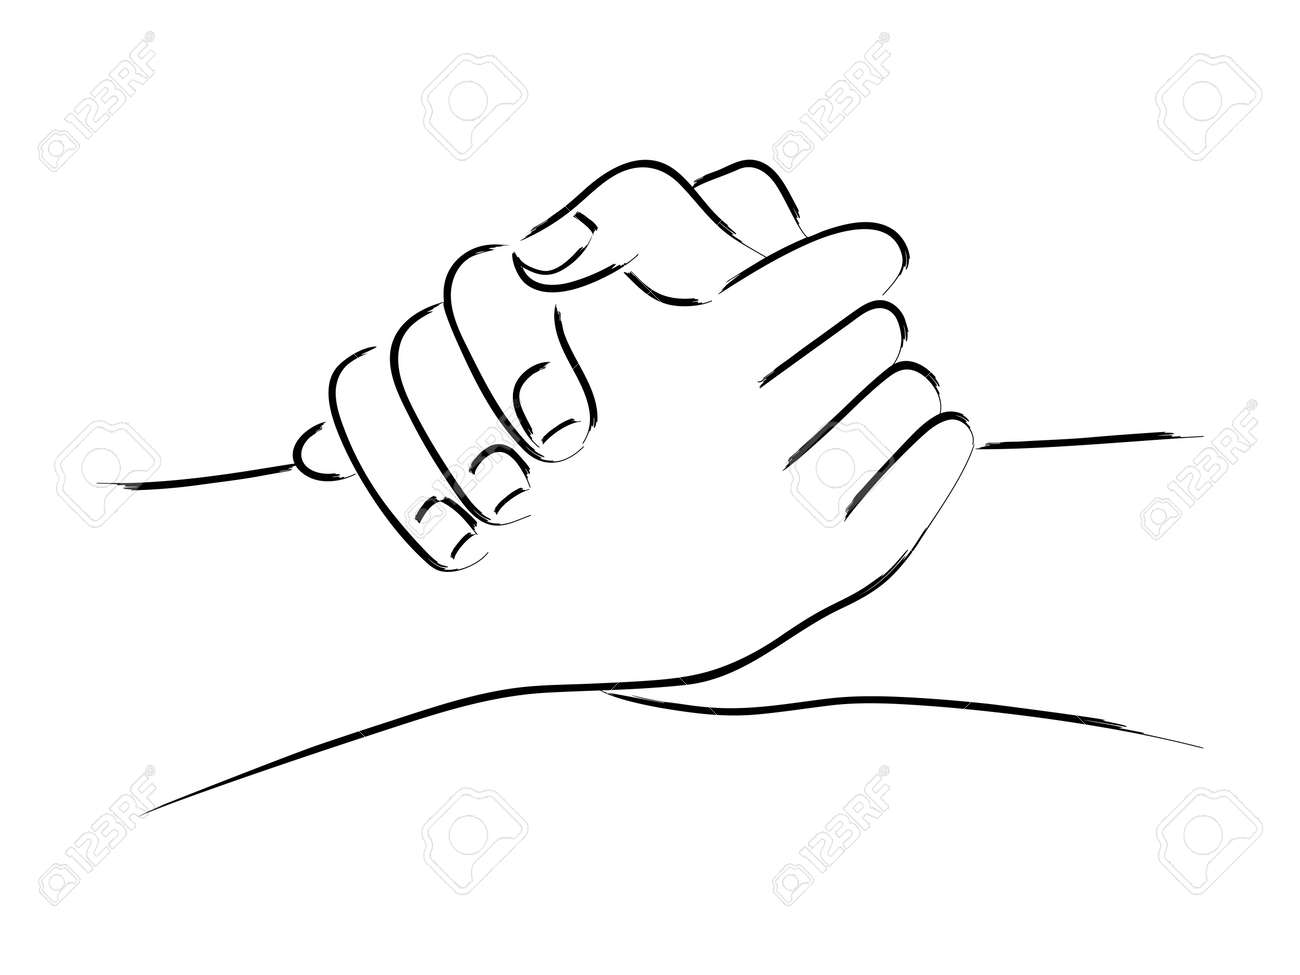 Line Art Of Two Hands Holding Each Other Strongly Royalty Free